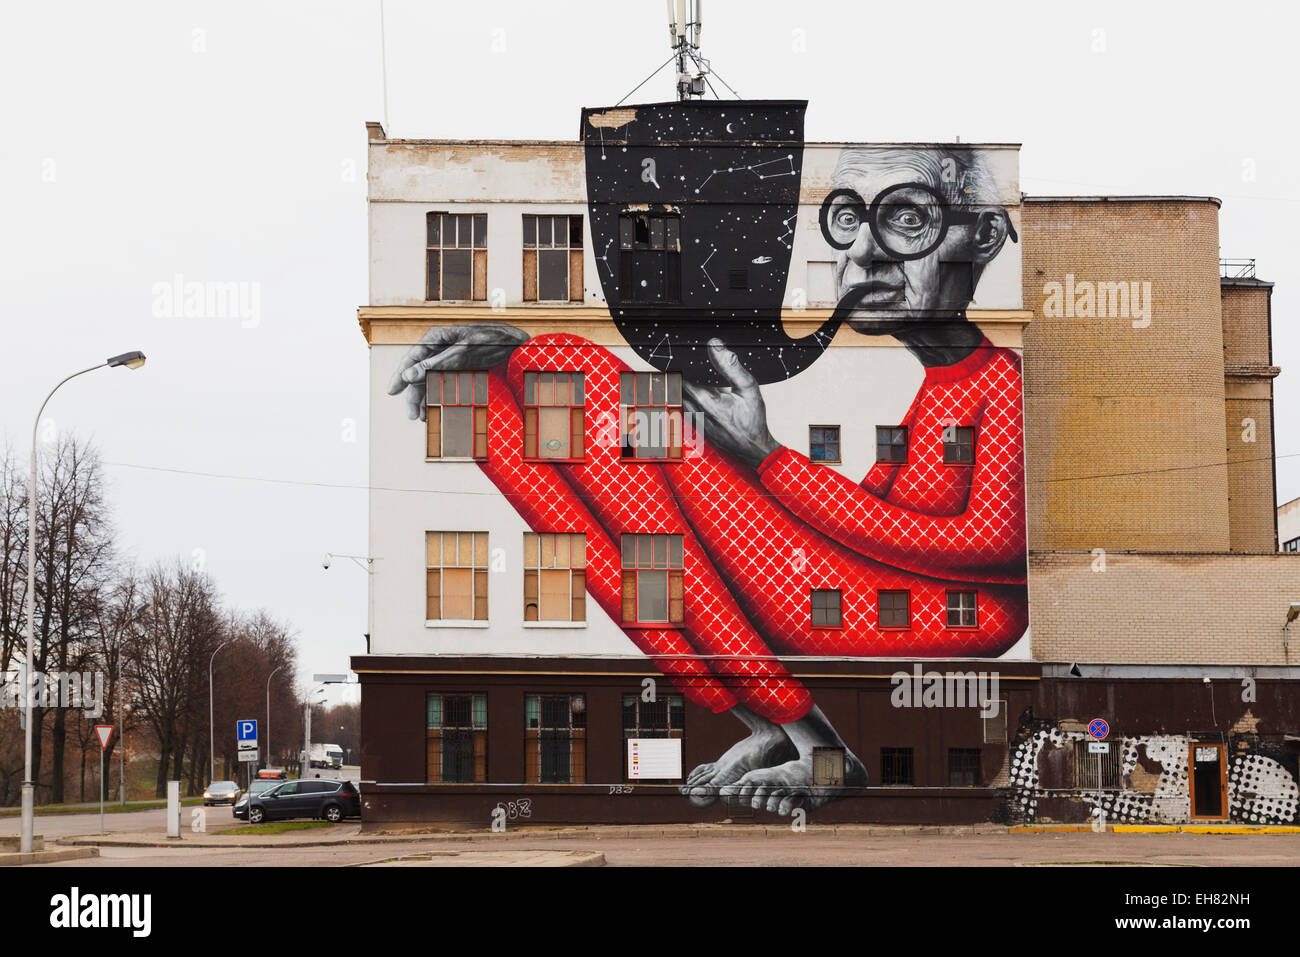 Wall art, Kaunas, Lithuania, Europe - Stock Image